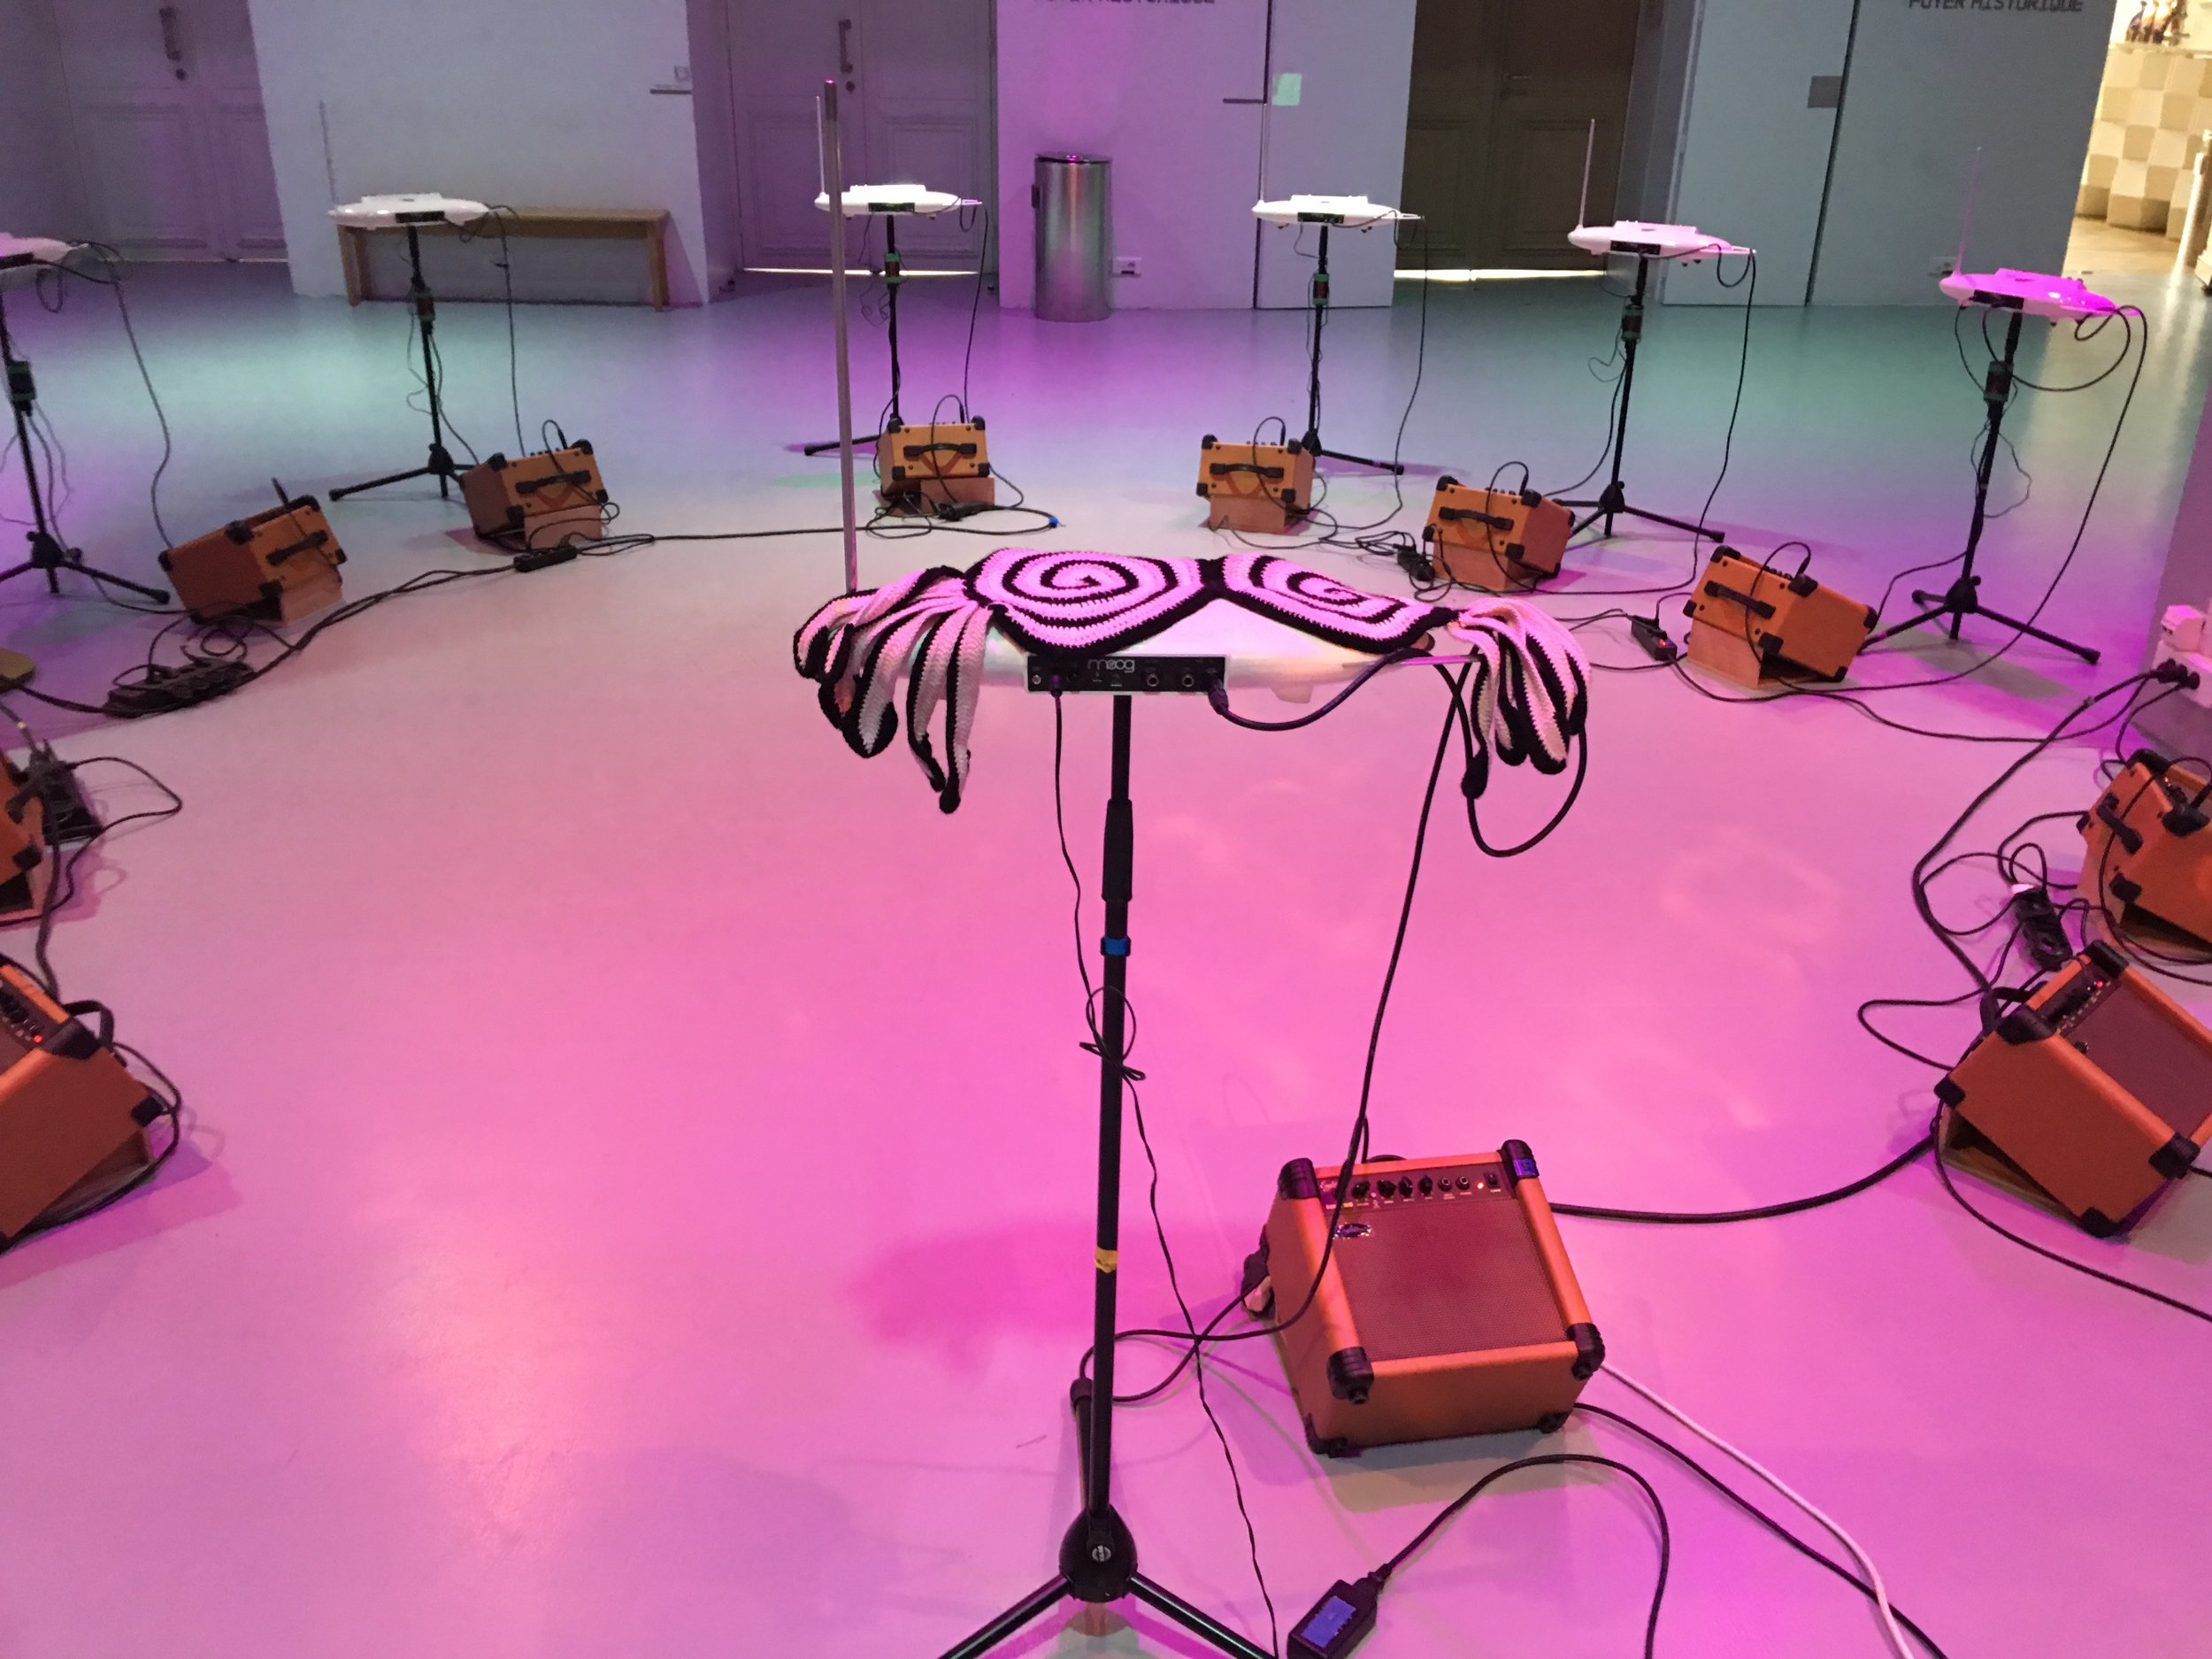 Photo: L'Ecole Theremin at the Gaite Lyrique in Paris